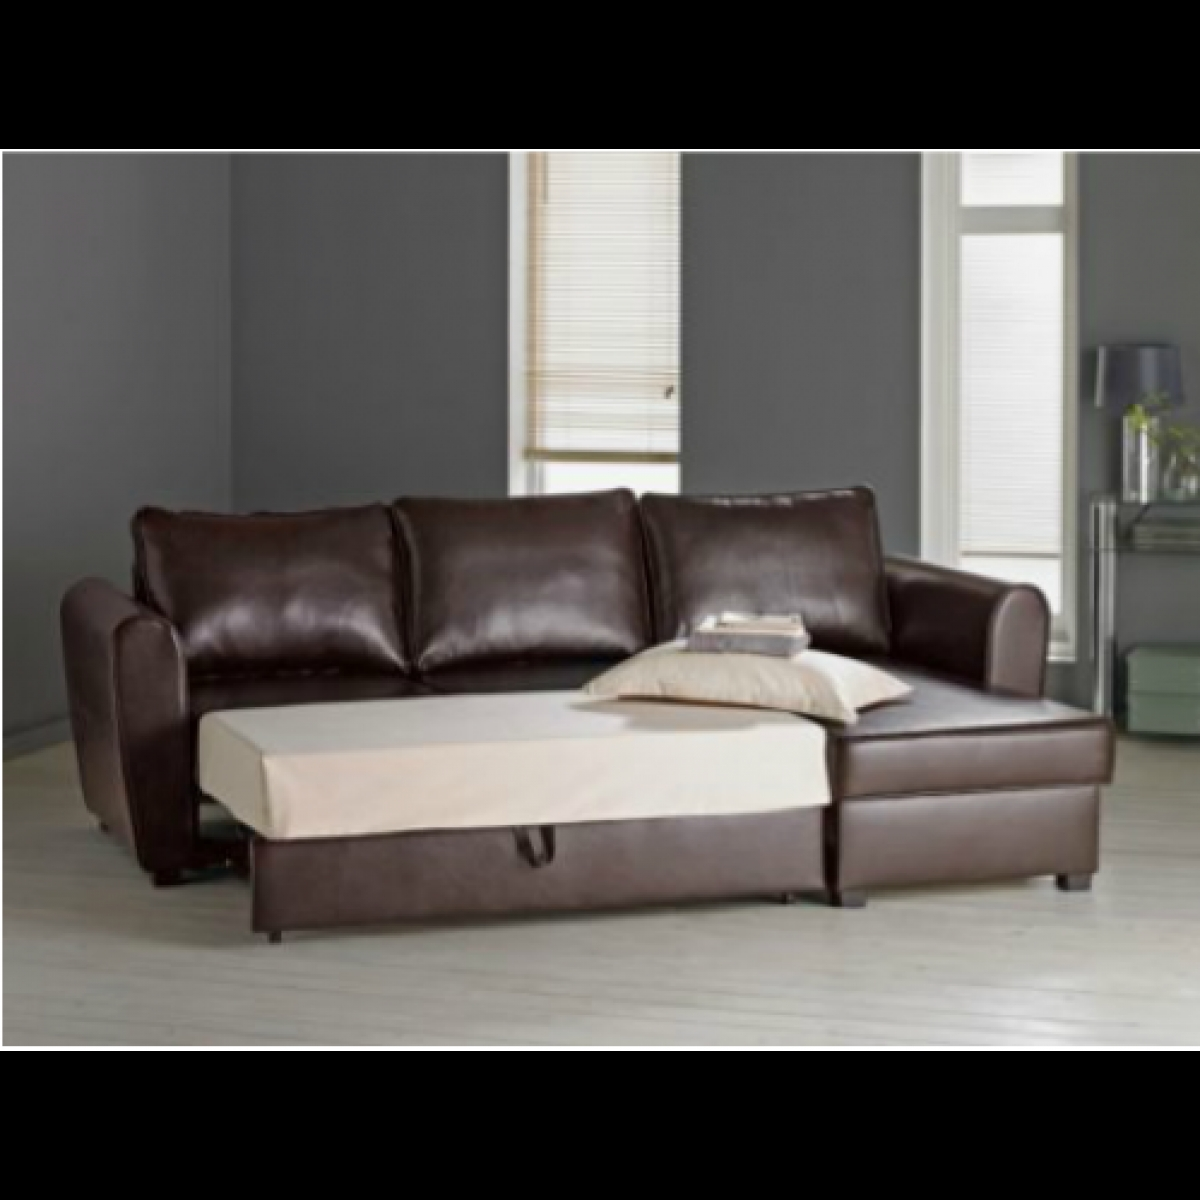 New Siena Fabric Corner Sofa Bed With Storage Charcoal In Corner Couch Bed (Image 13 of 15)